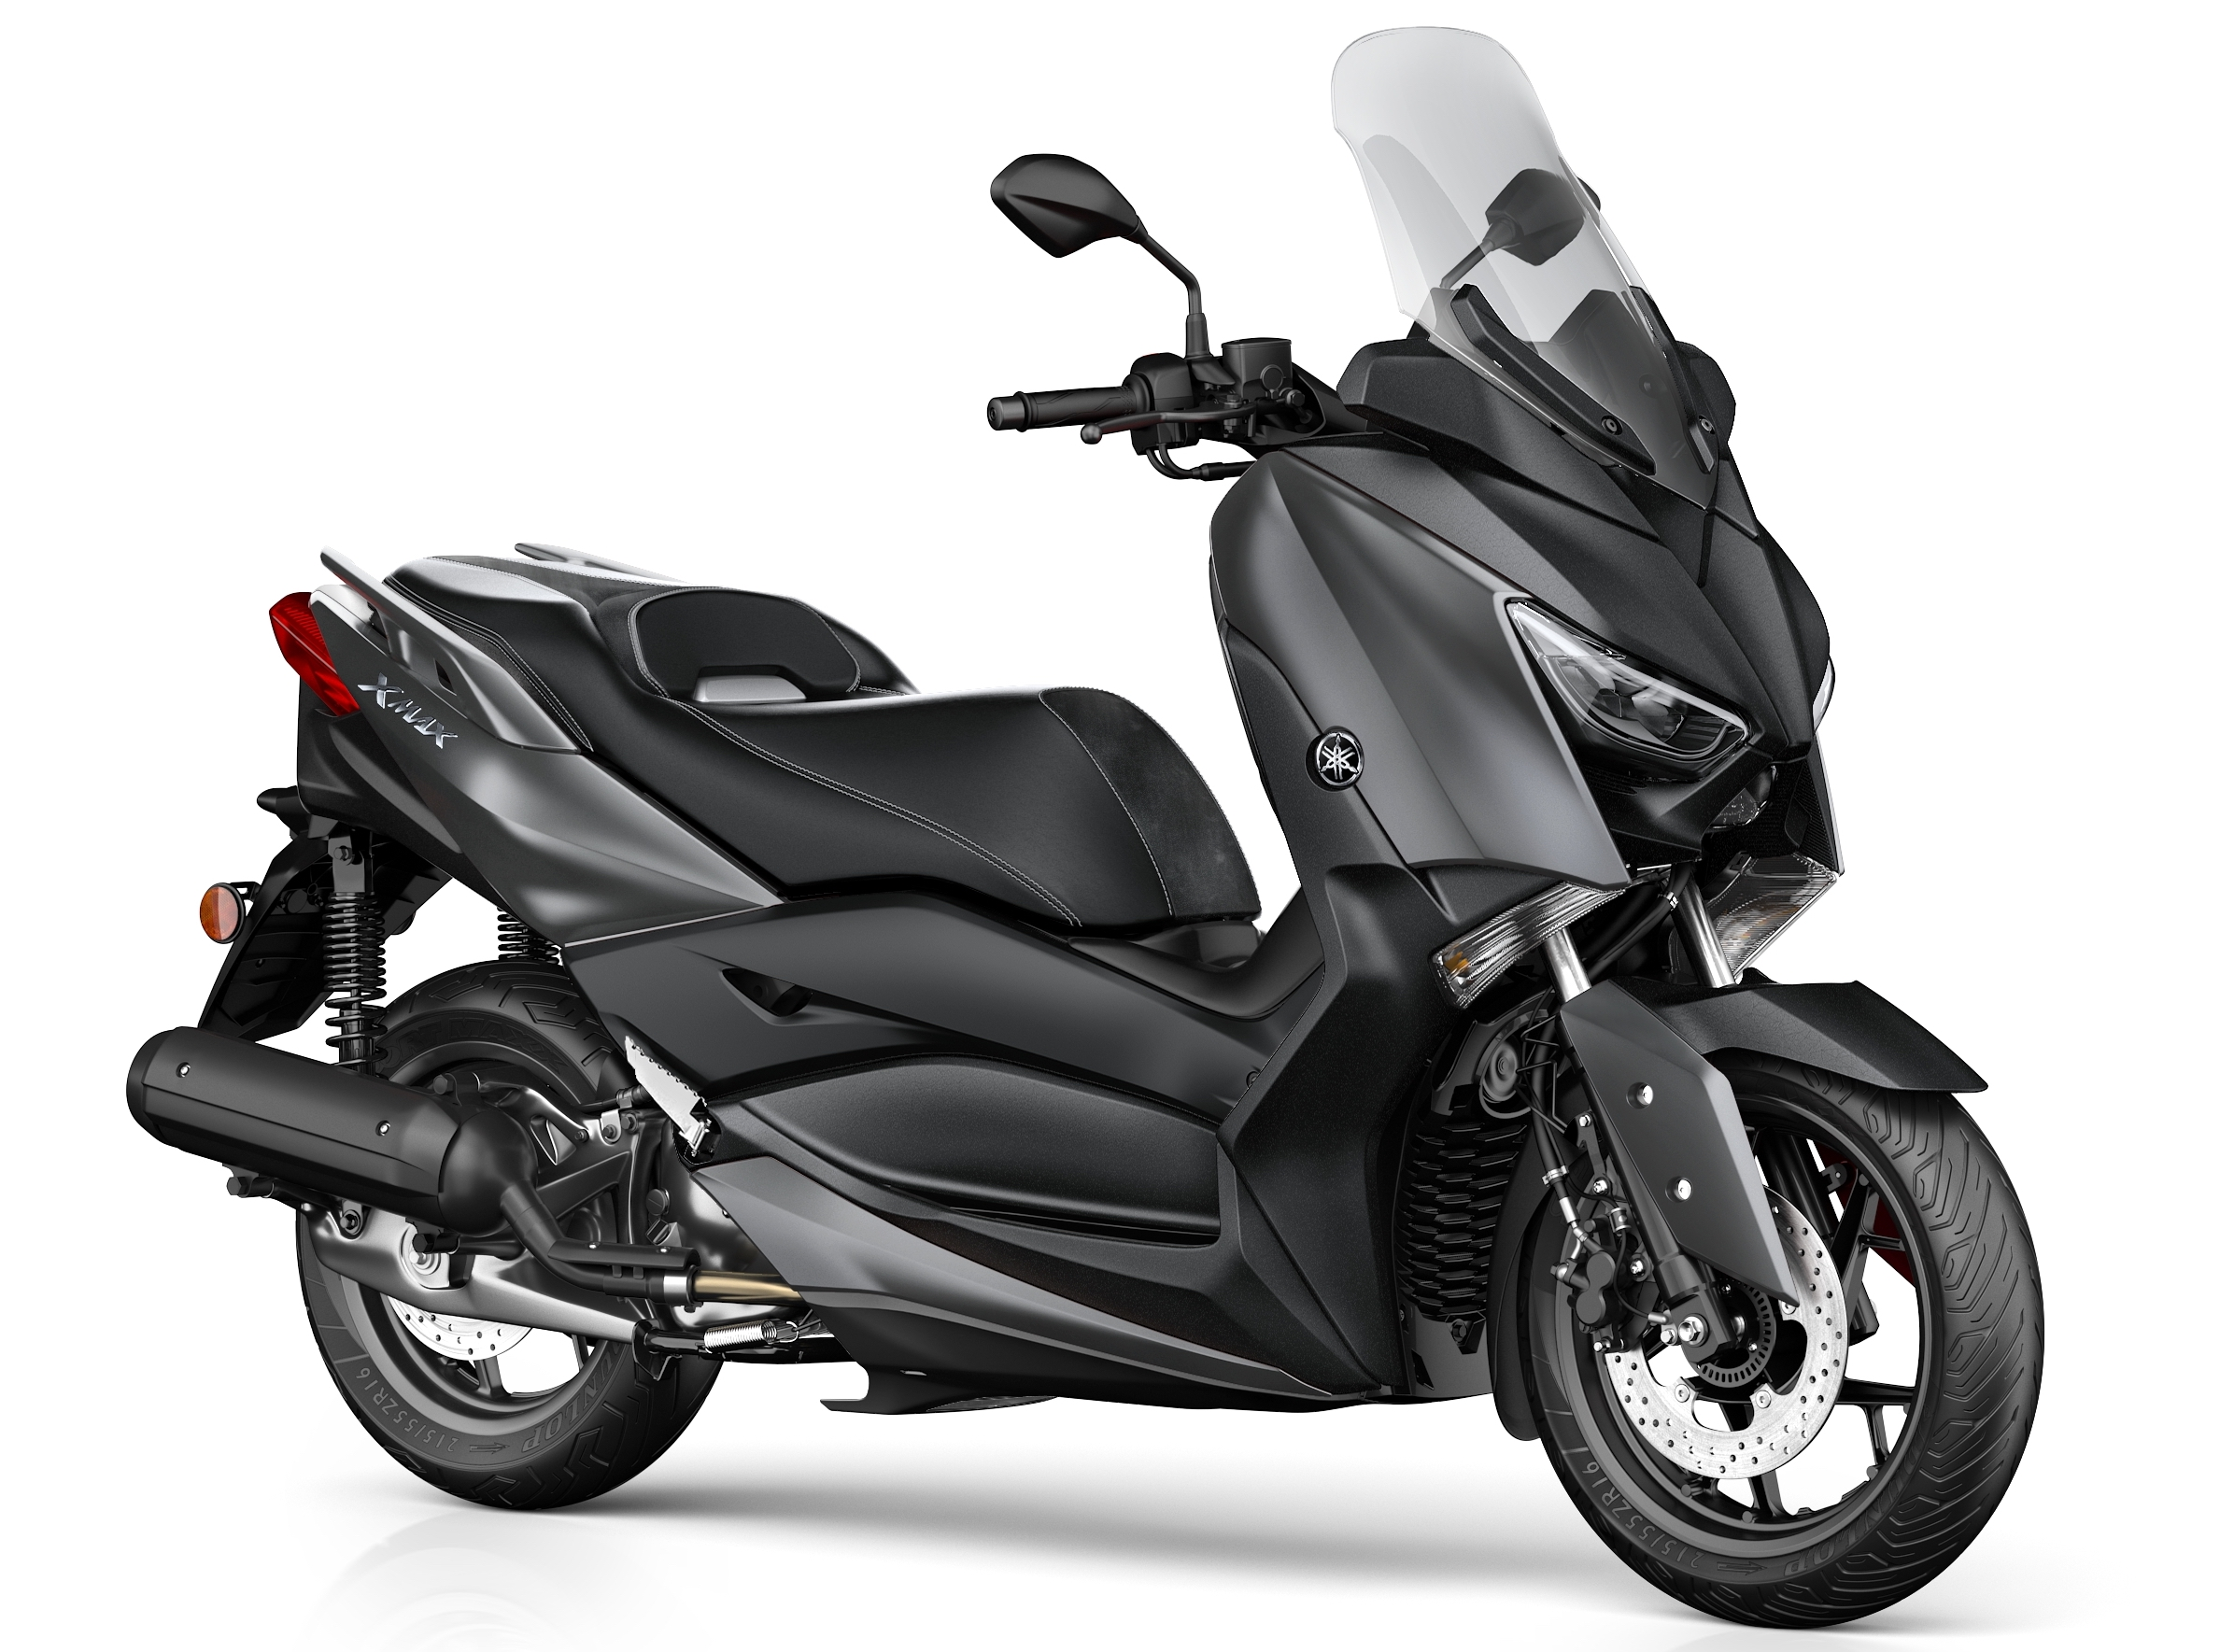 2018 yamaha x max 125 scooter released in europe paul tan image 709925. Black Bedroom Furniture Sets. Home Design Ideas